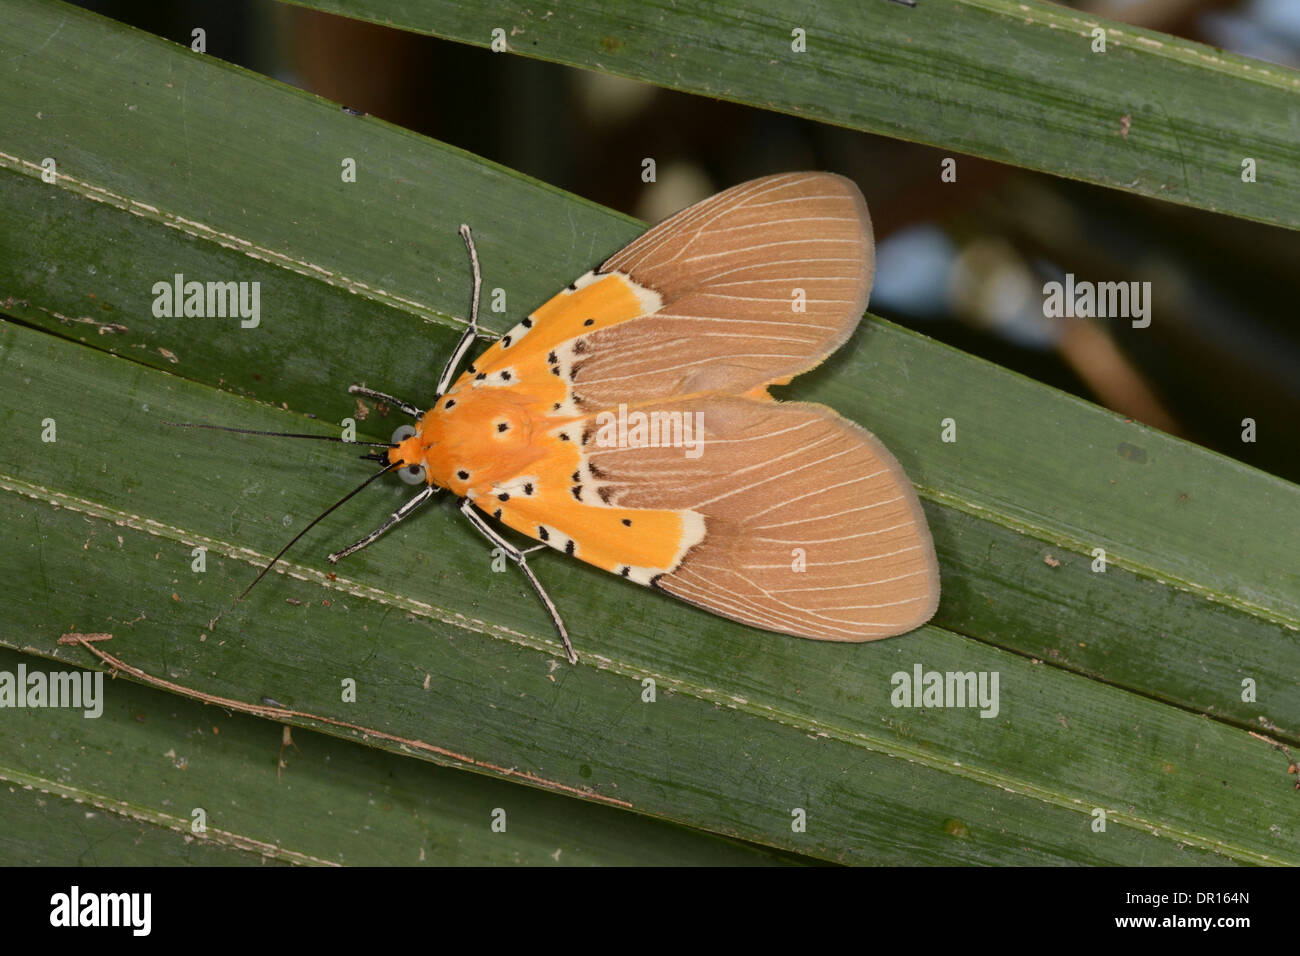 Specious Tiger Moth (Asota speciosa) adult moth resting on leaf, Kafue National Park, Zambia, September Stock Photo